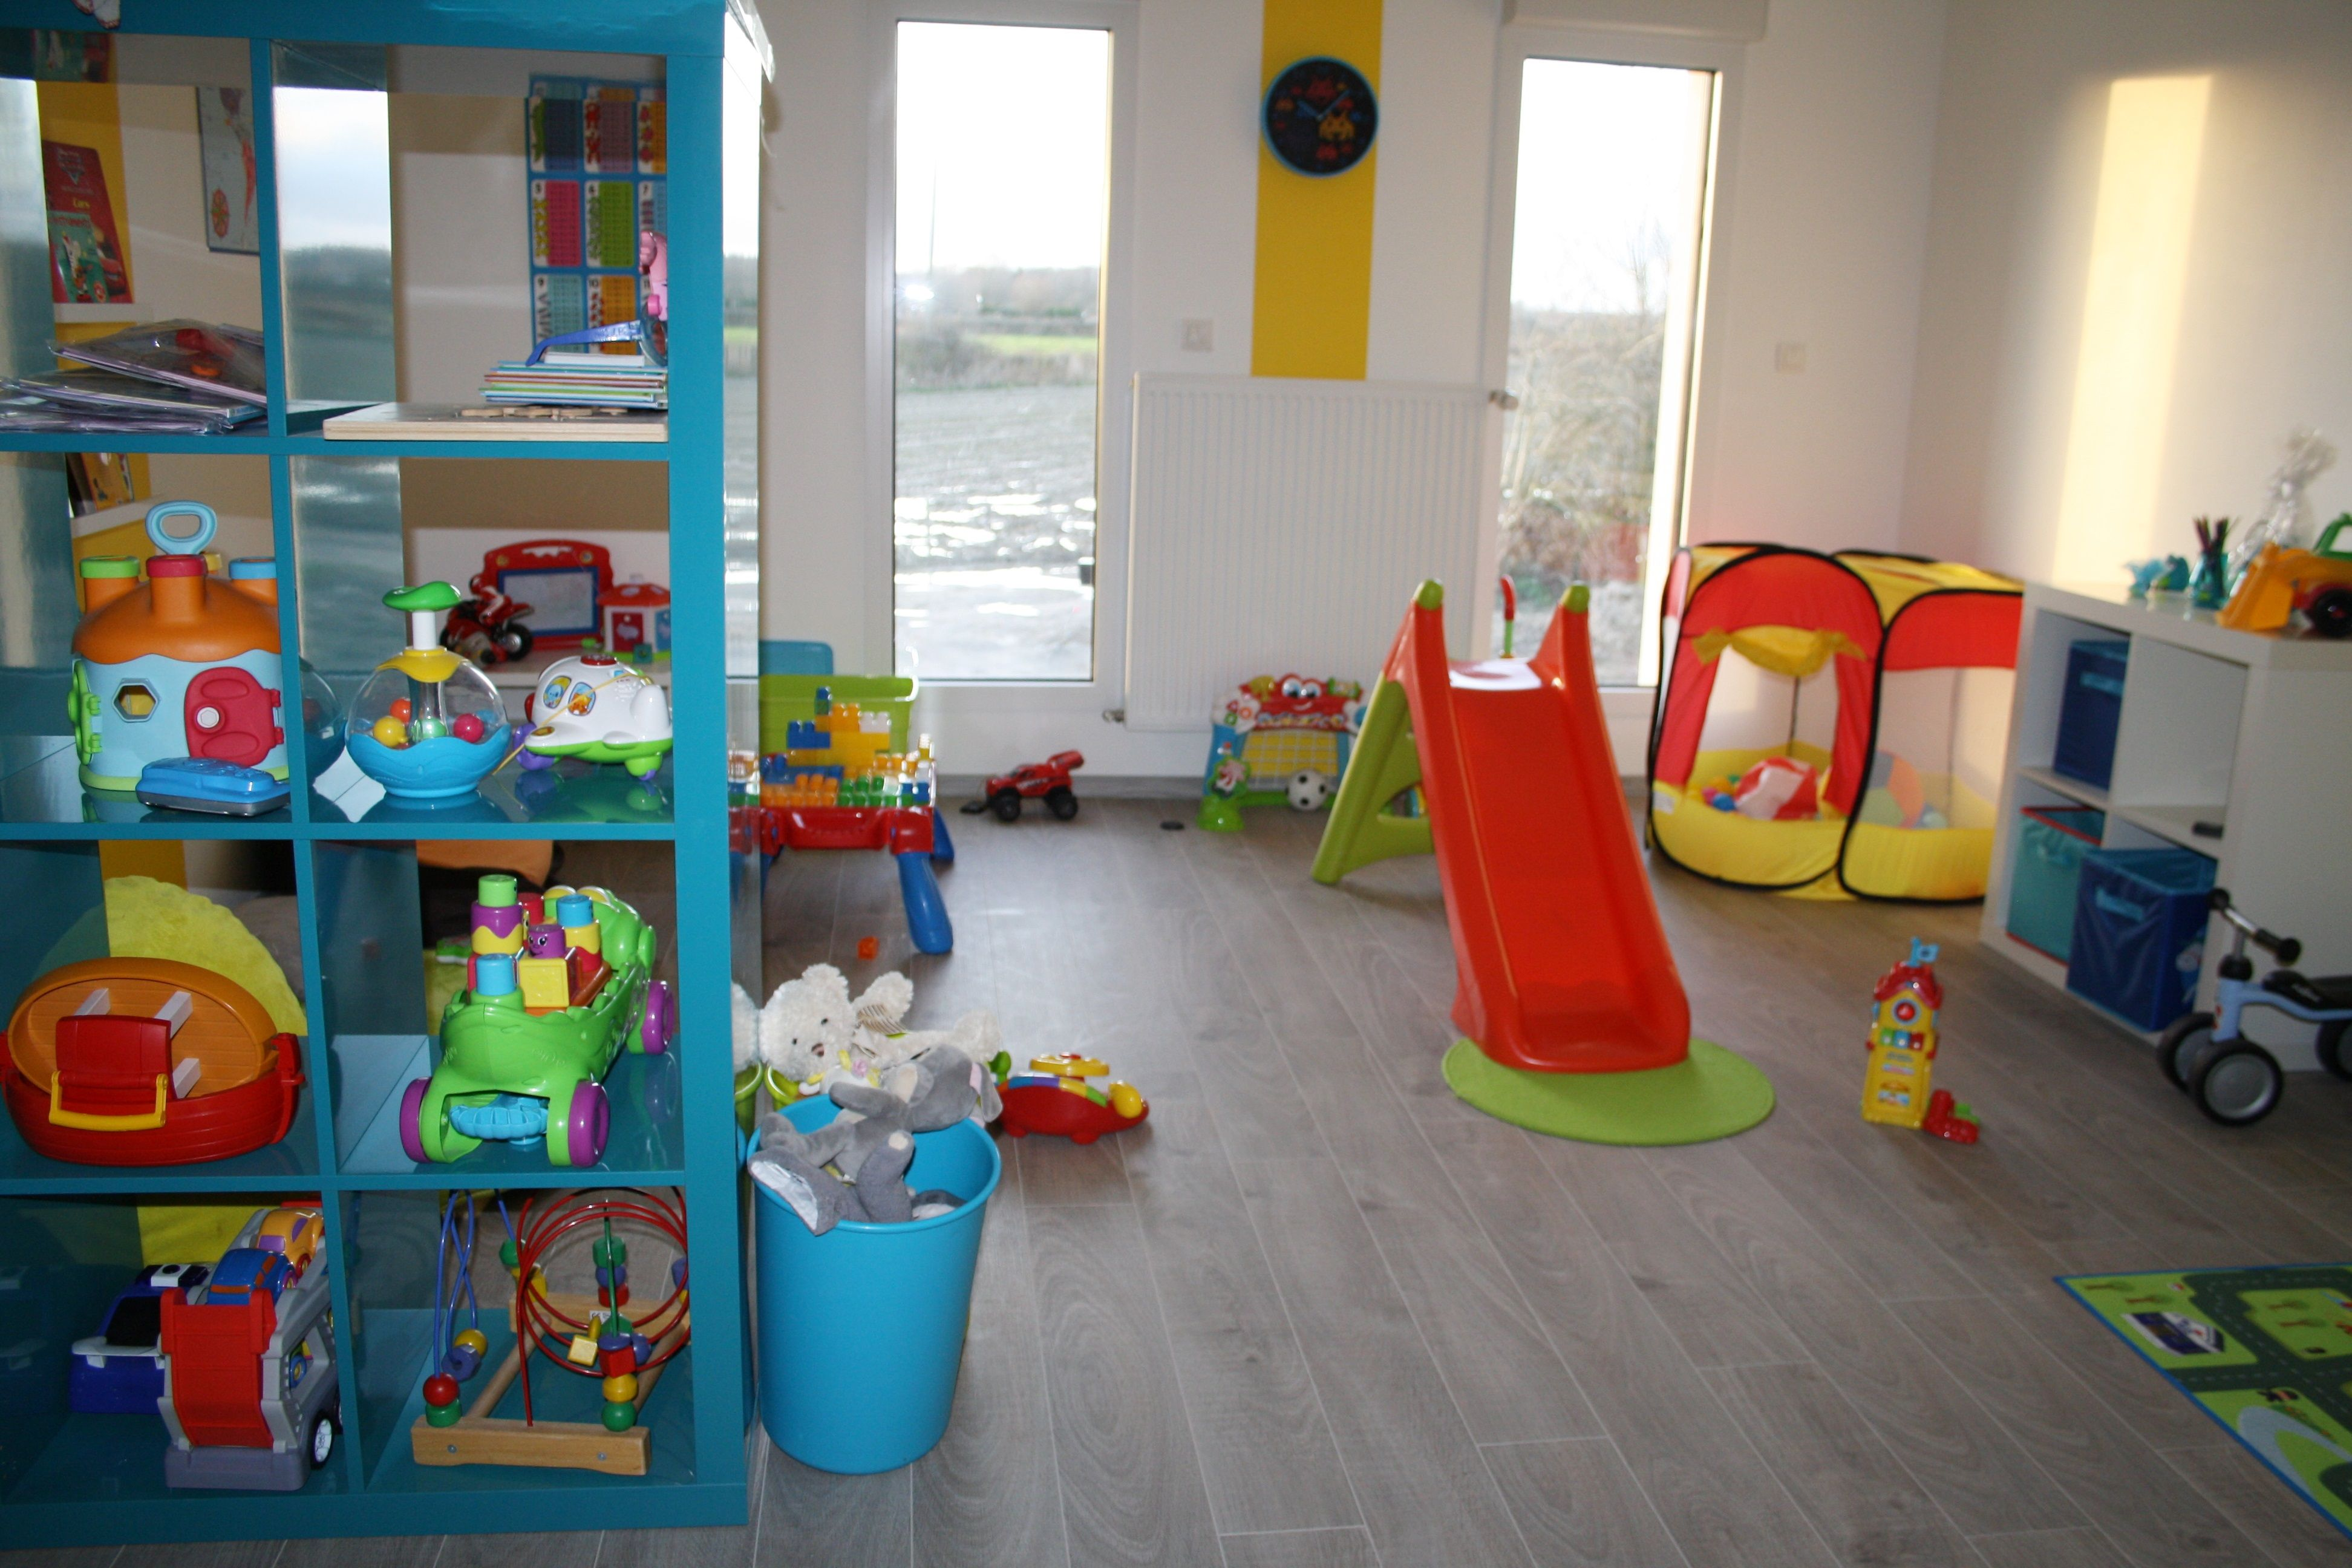 salle de jeux b u00e9b u00e9  kids world  playroom